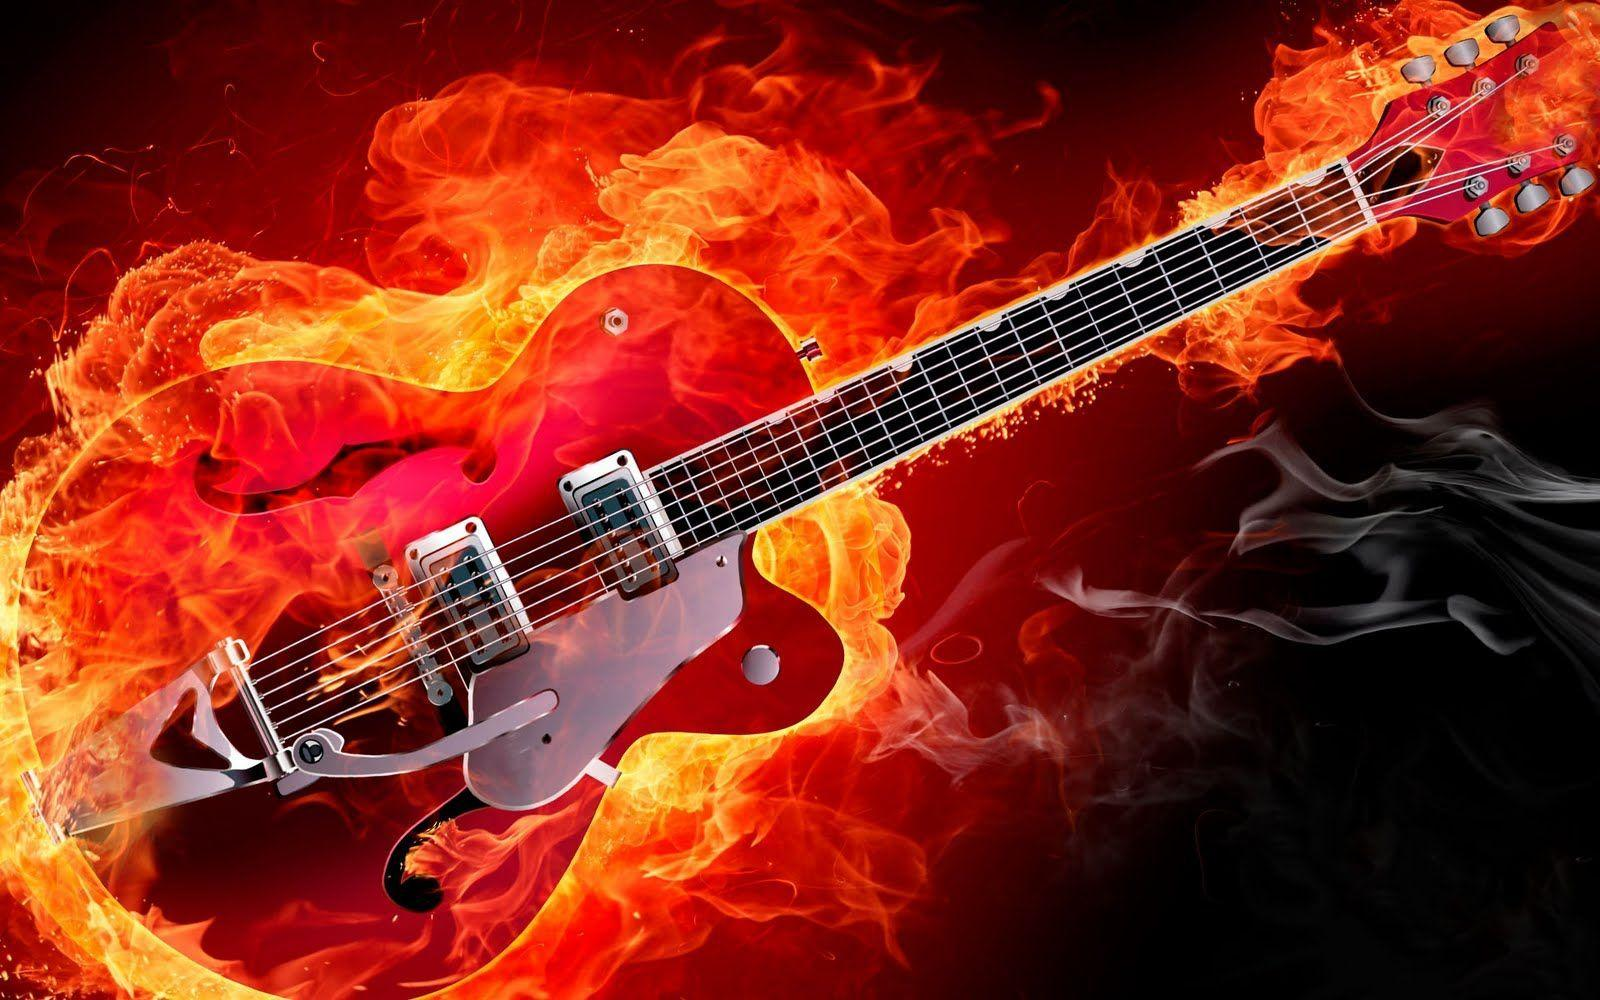 Electric Guitar Wallpaper For Desktop Hd Background - HD Wallpapers ...